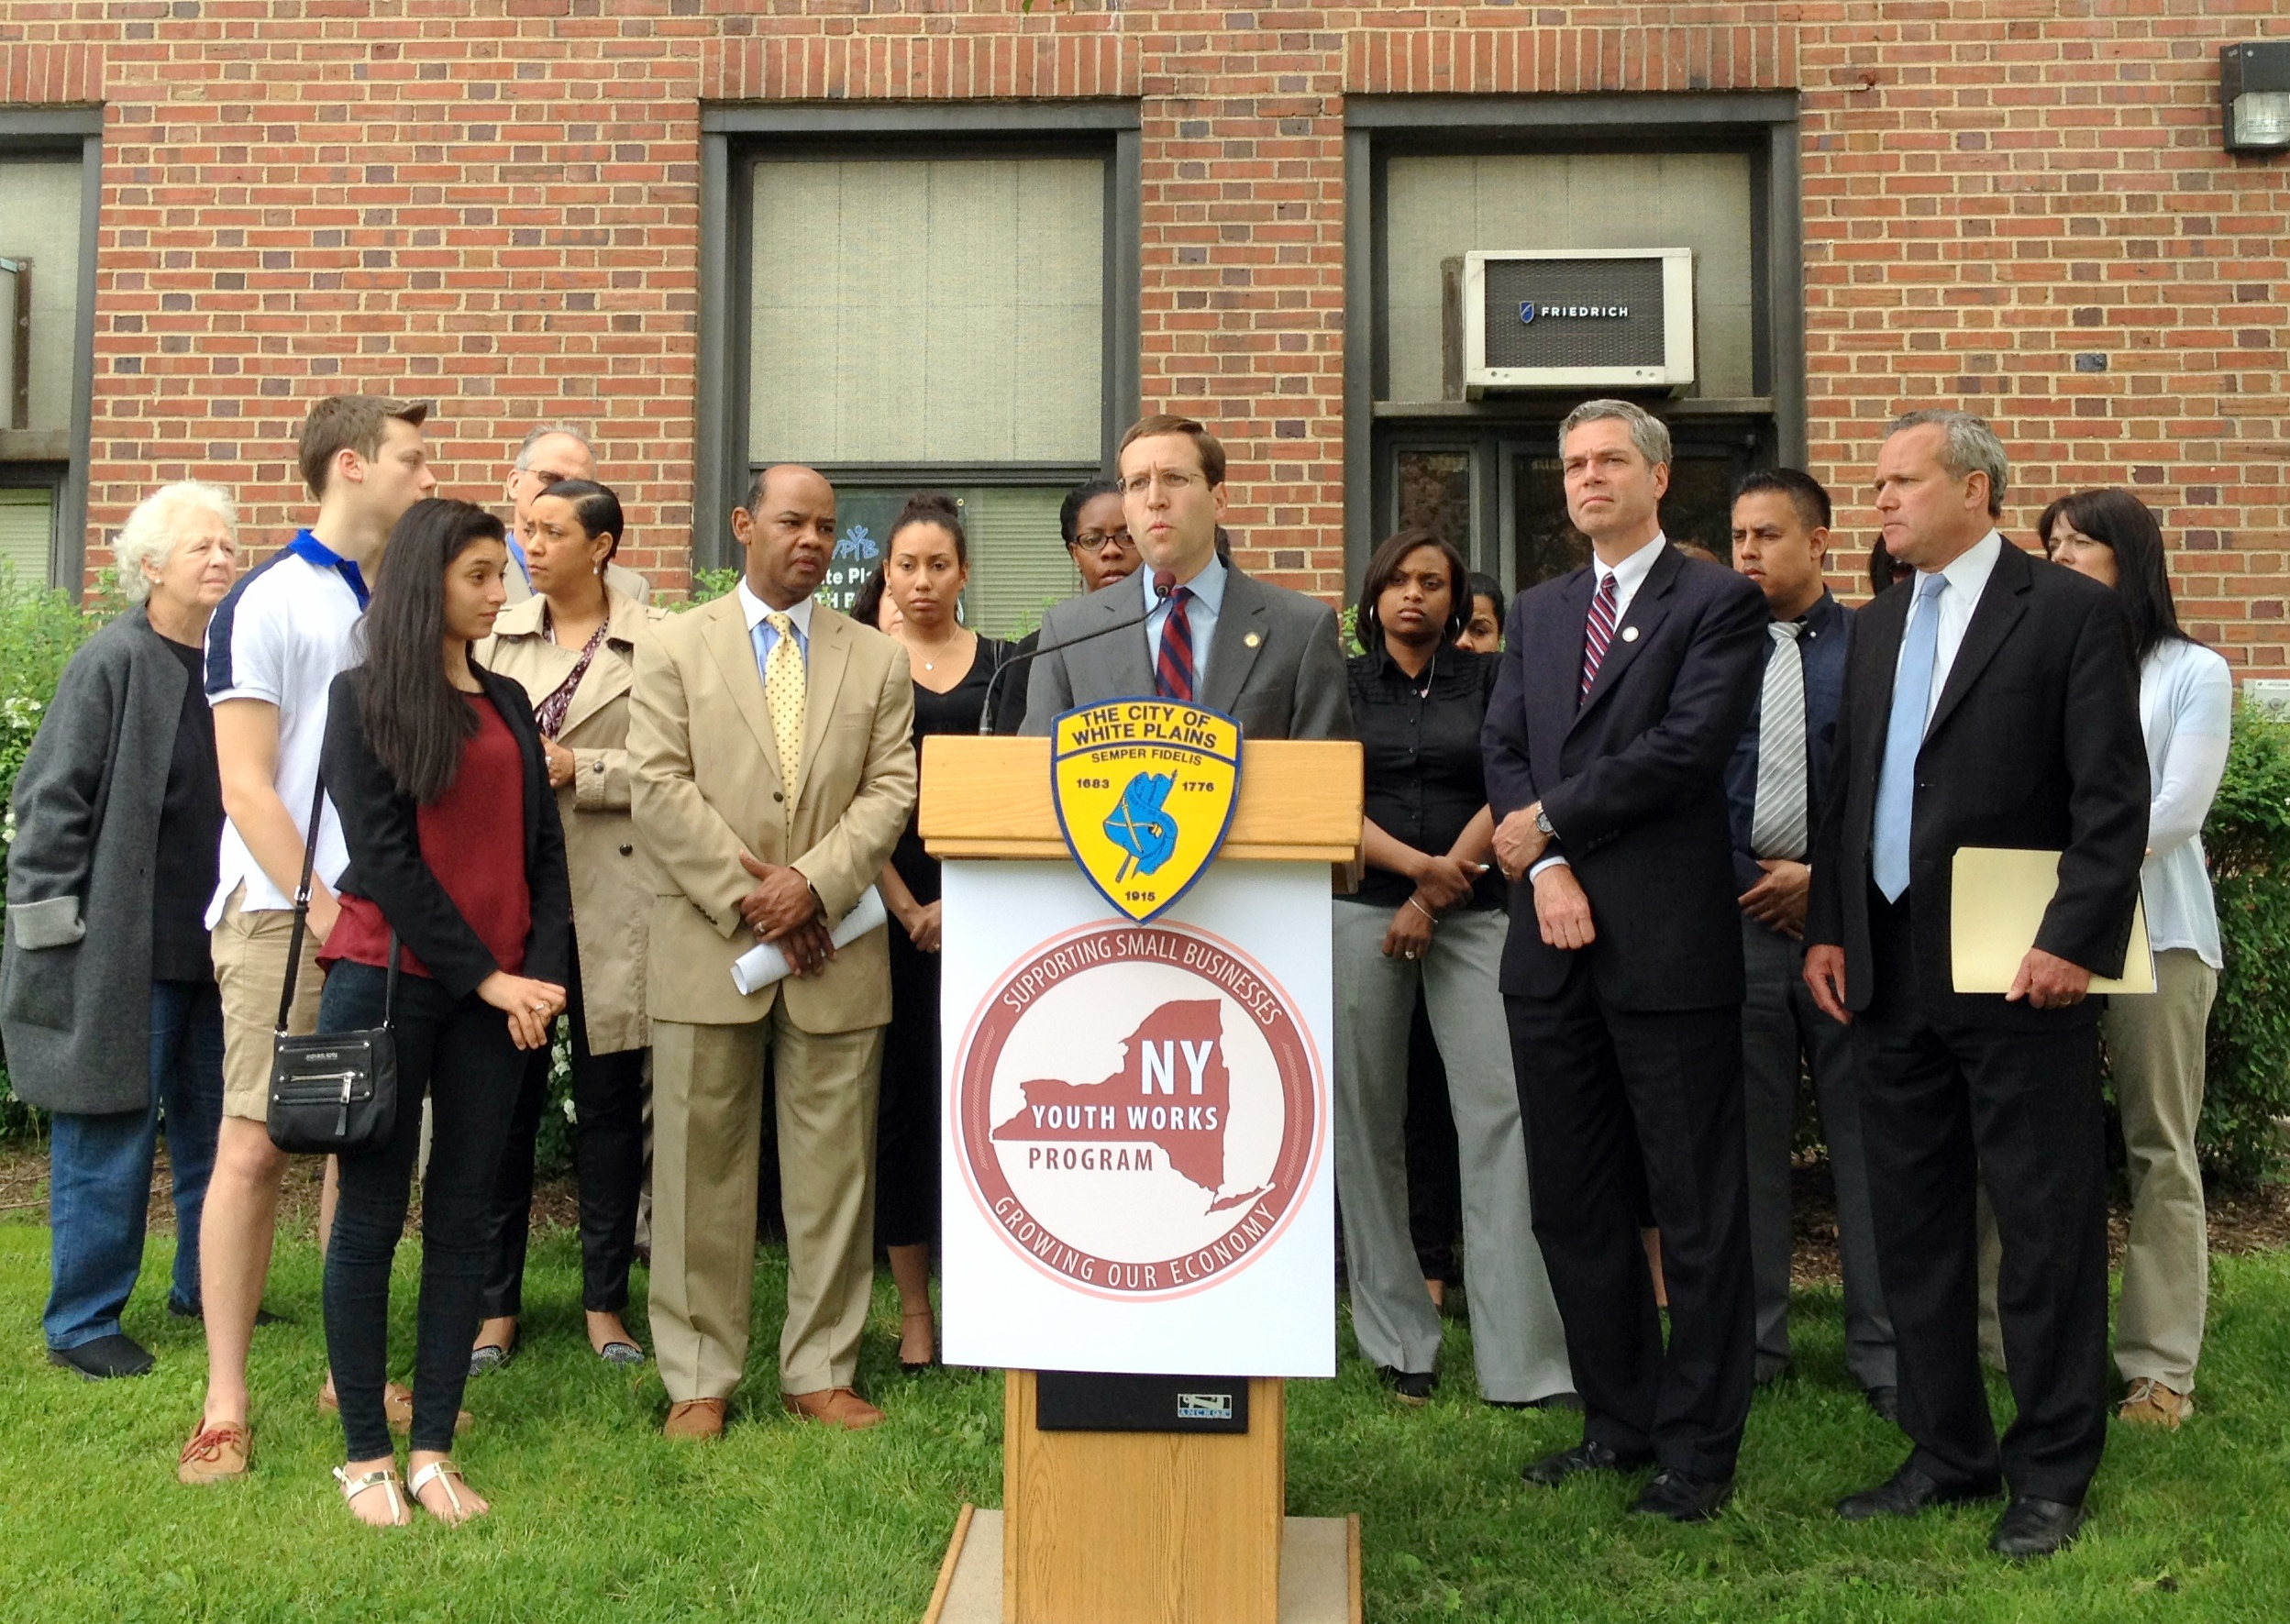 City and state officials announced the inclusion of the city in the New York State Youth Works Program.